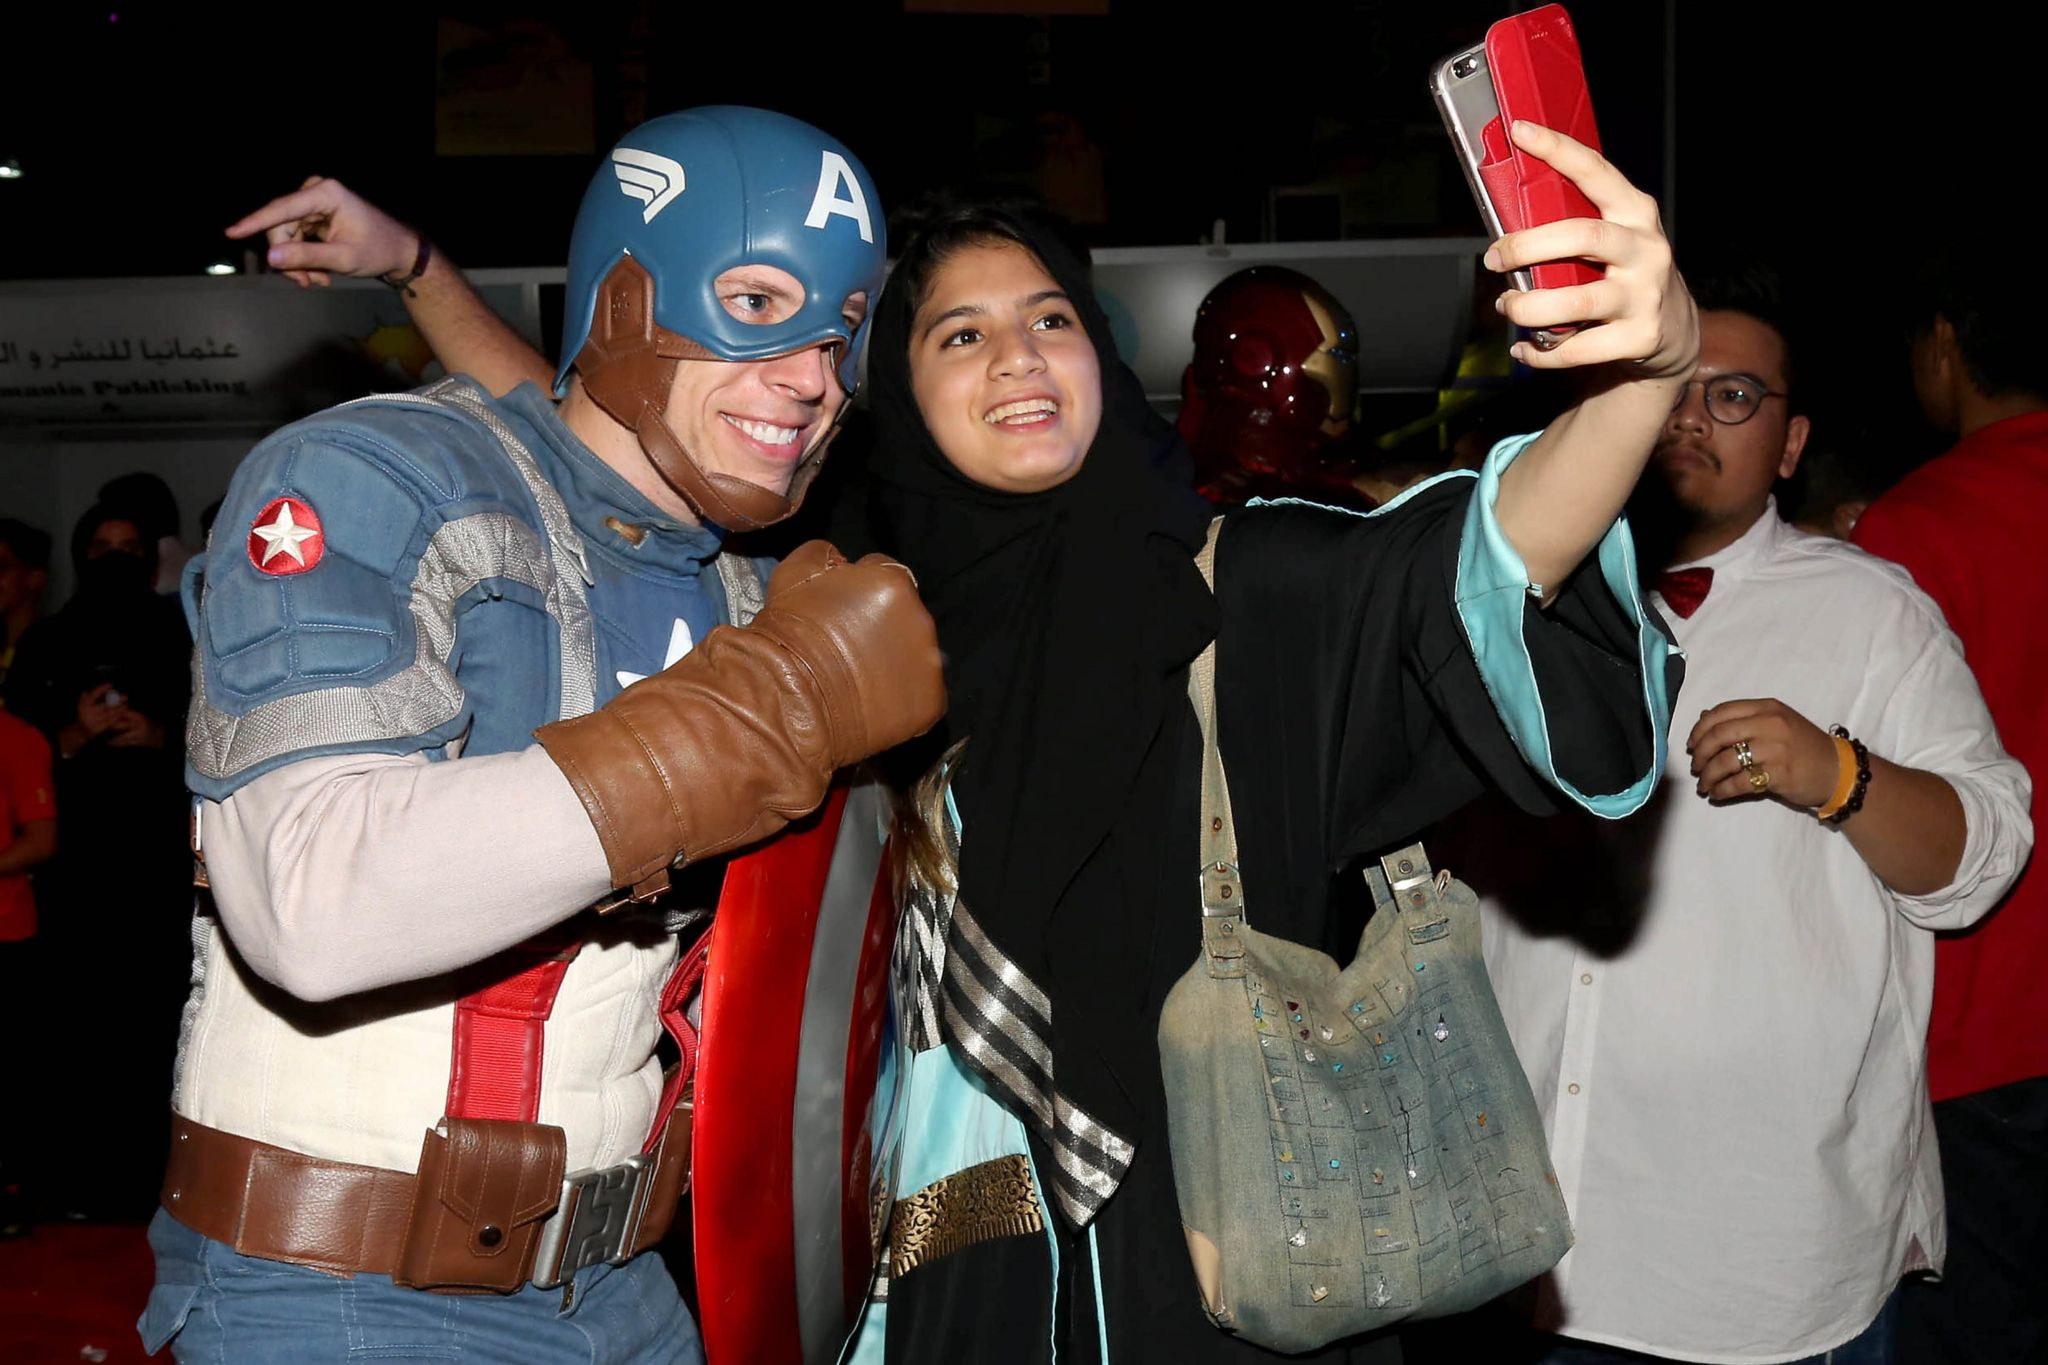 A woman poses for a selfie with a man dressed as Captain America during the Jeddah Comic Con, in Jeddah, Saudi Arabia, 16 February 2017